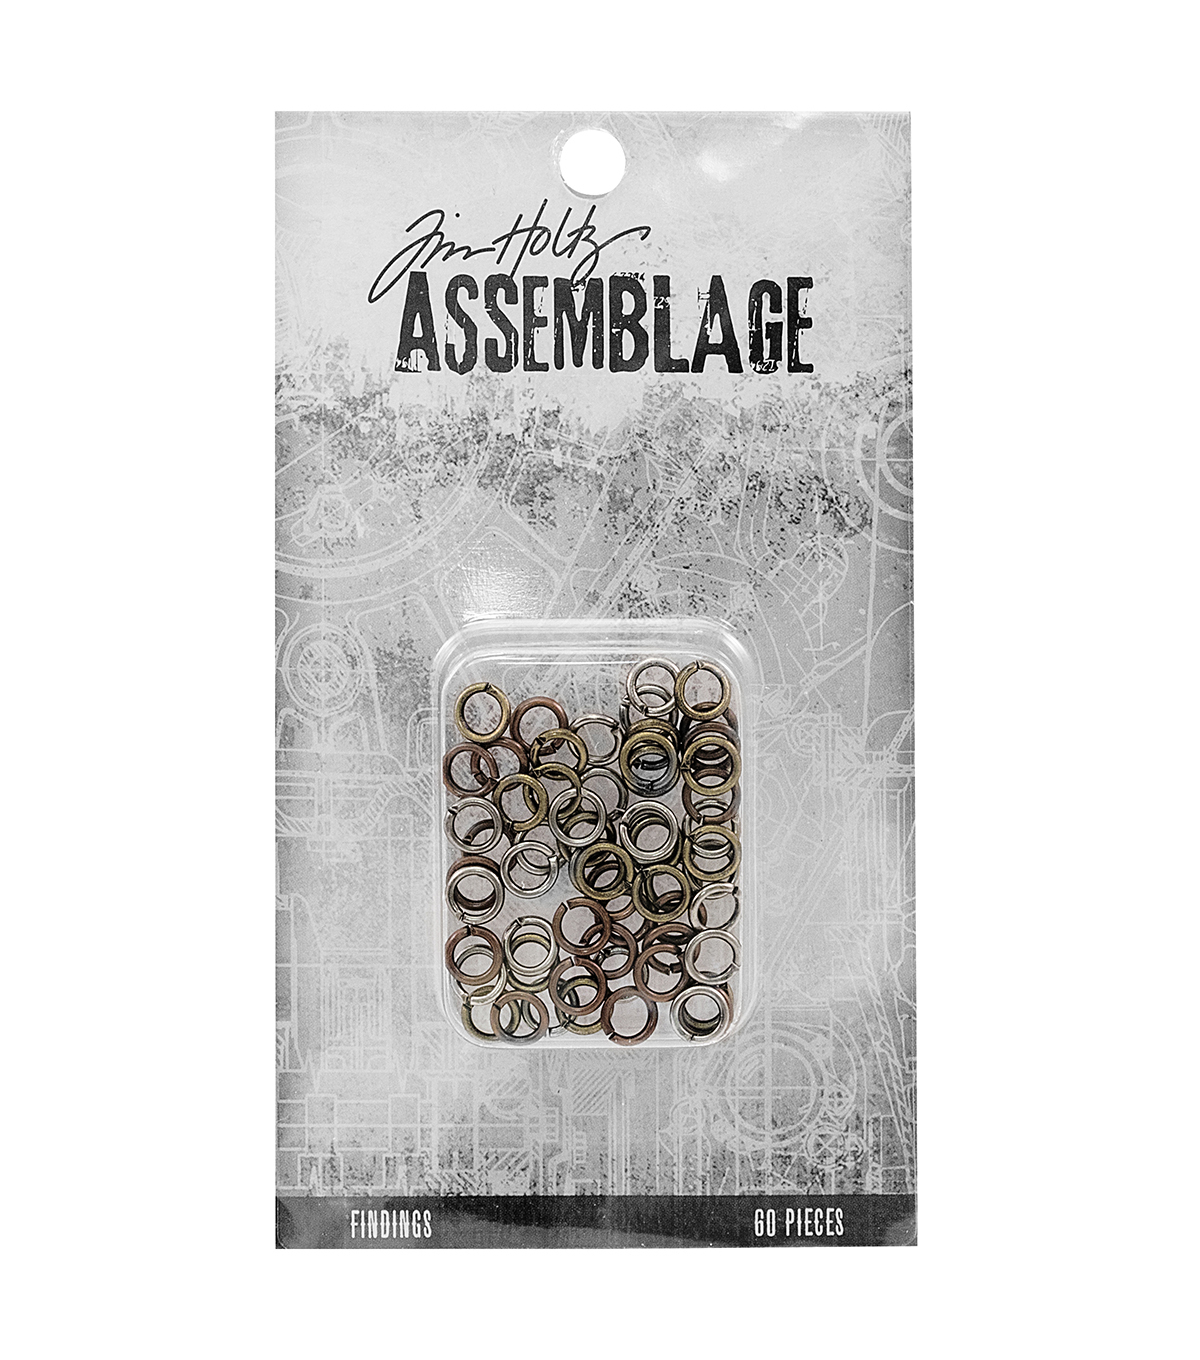 Tim Holtz® Assemblage Pack of 60 Jump Rings Findings-Assorted